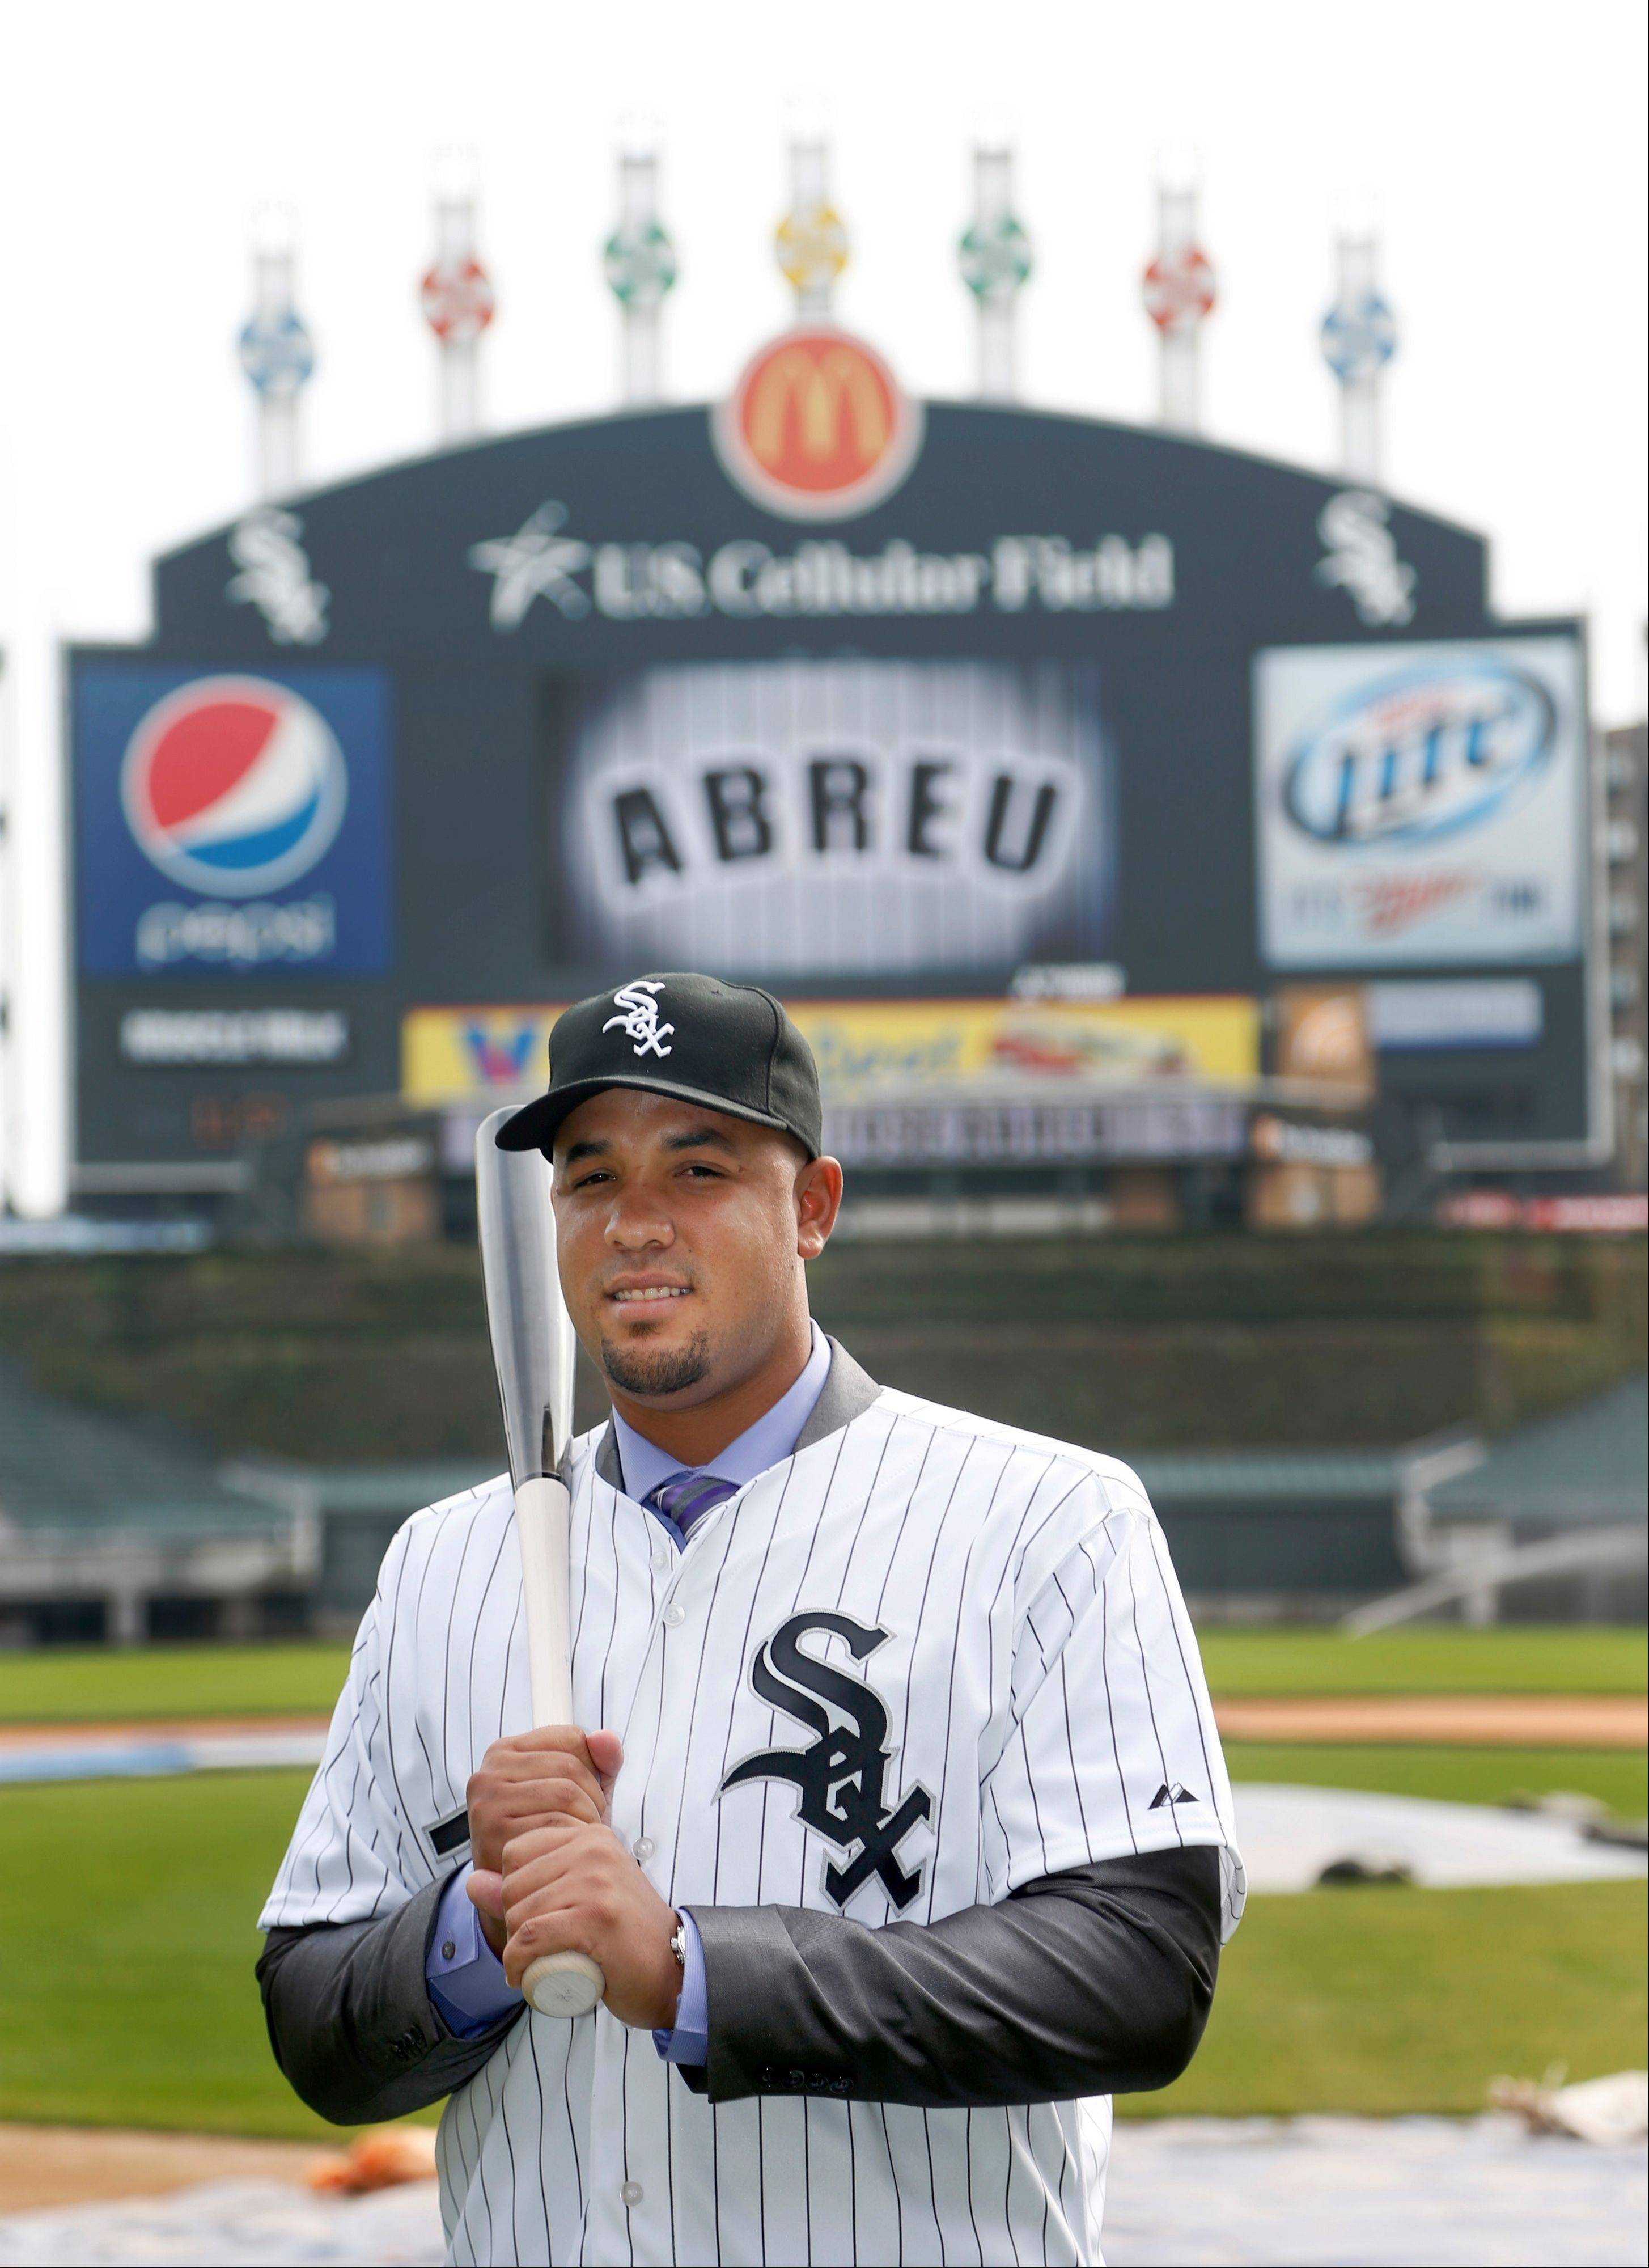 Cuban slugger Jose Abreu will receive a signing bonus of $10 million and be paid $7 million in 2014 to play for the White Sox.